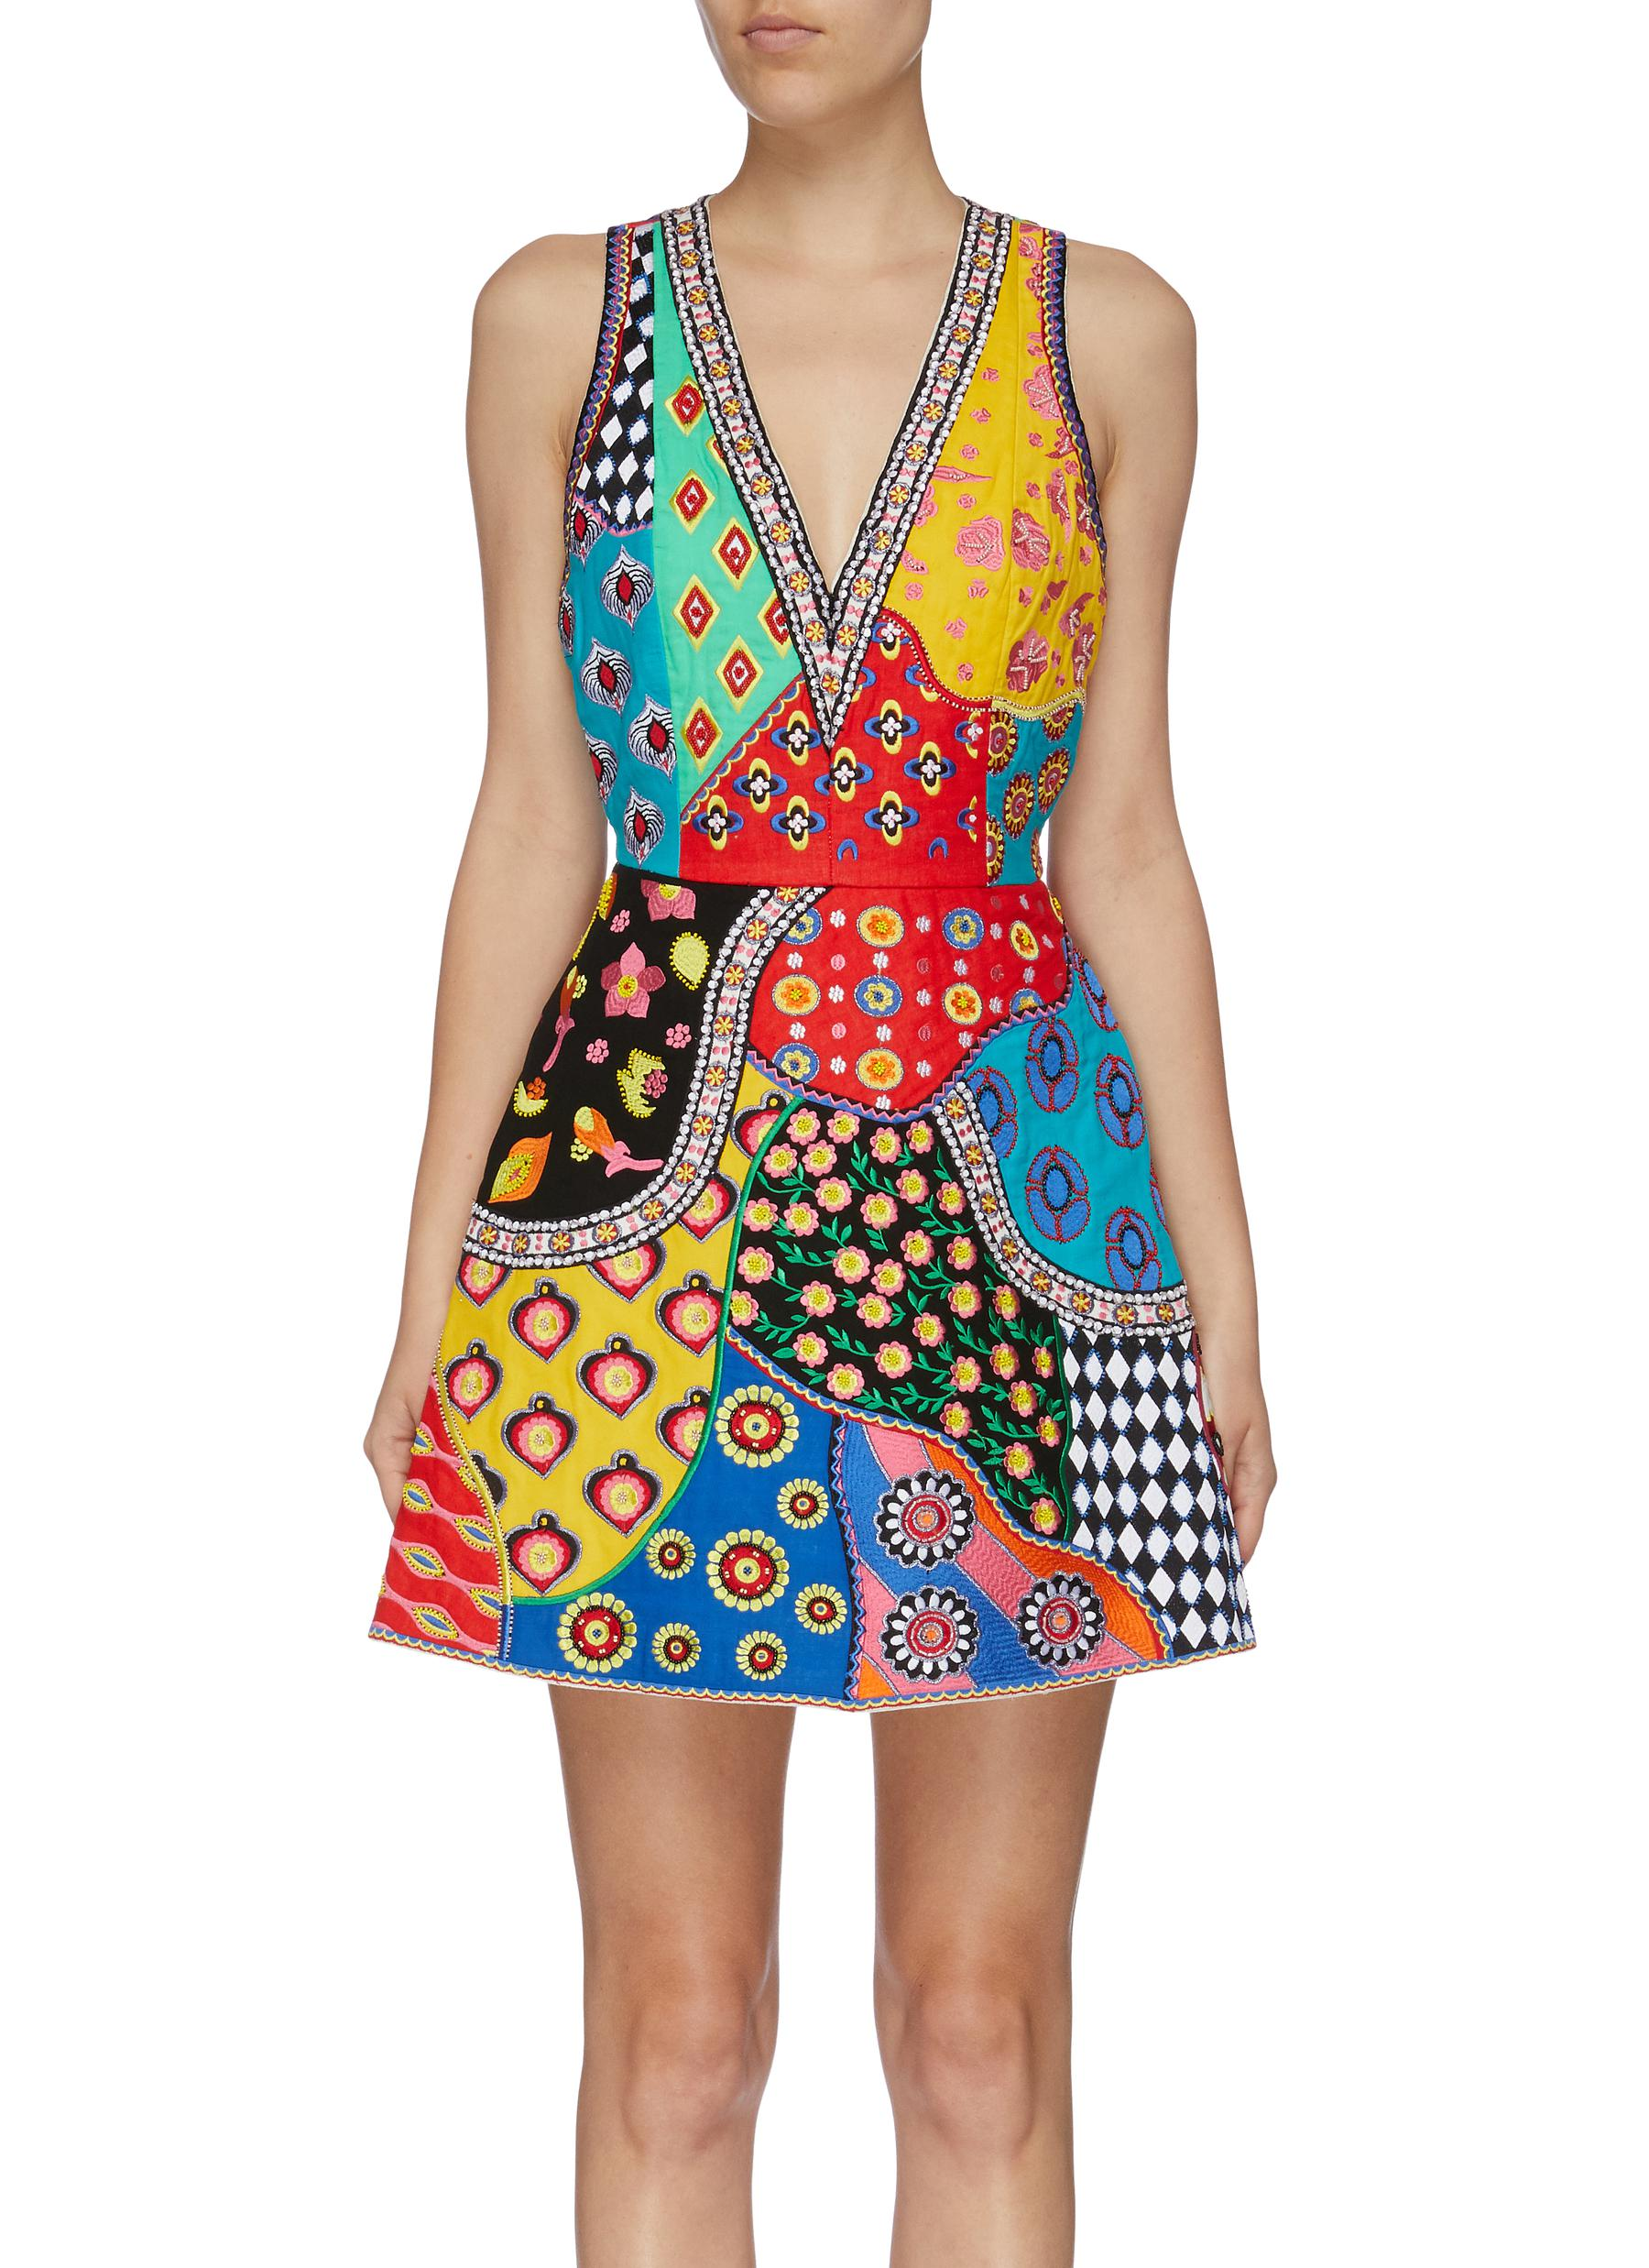 Tennie mix graphic embroidered patchwork dress by Alice + Olivia